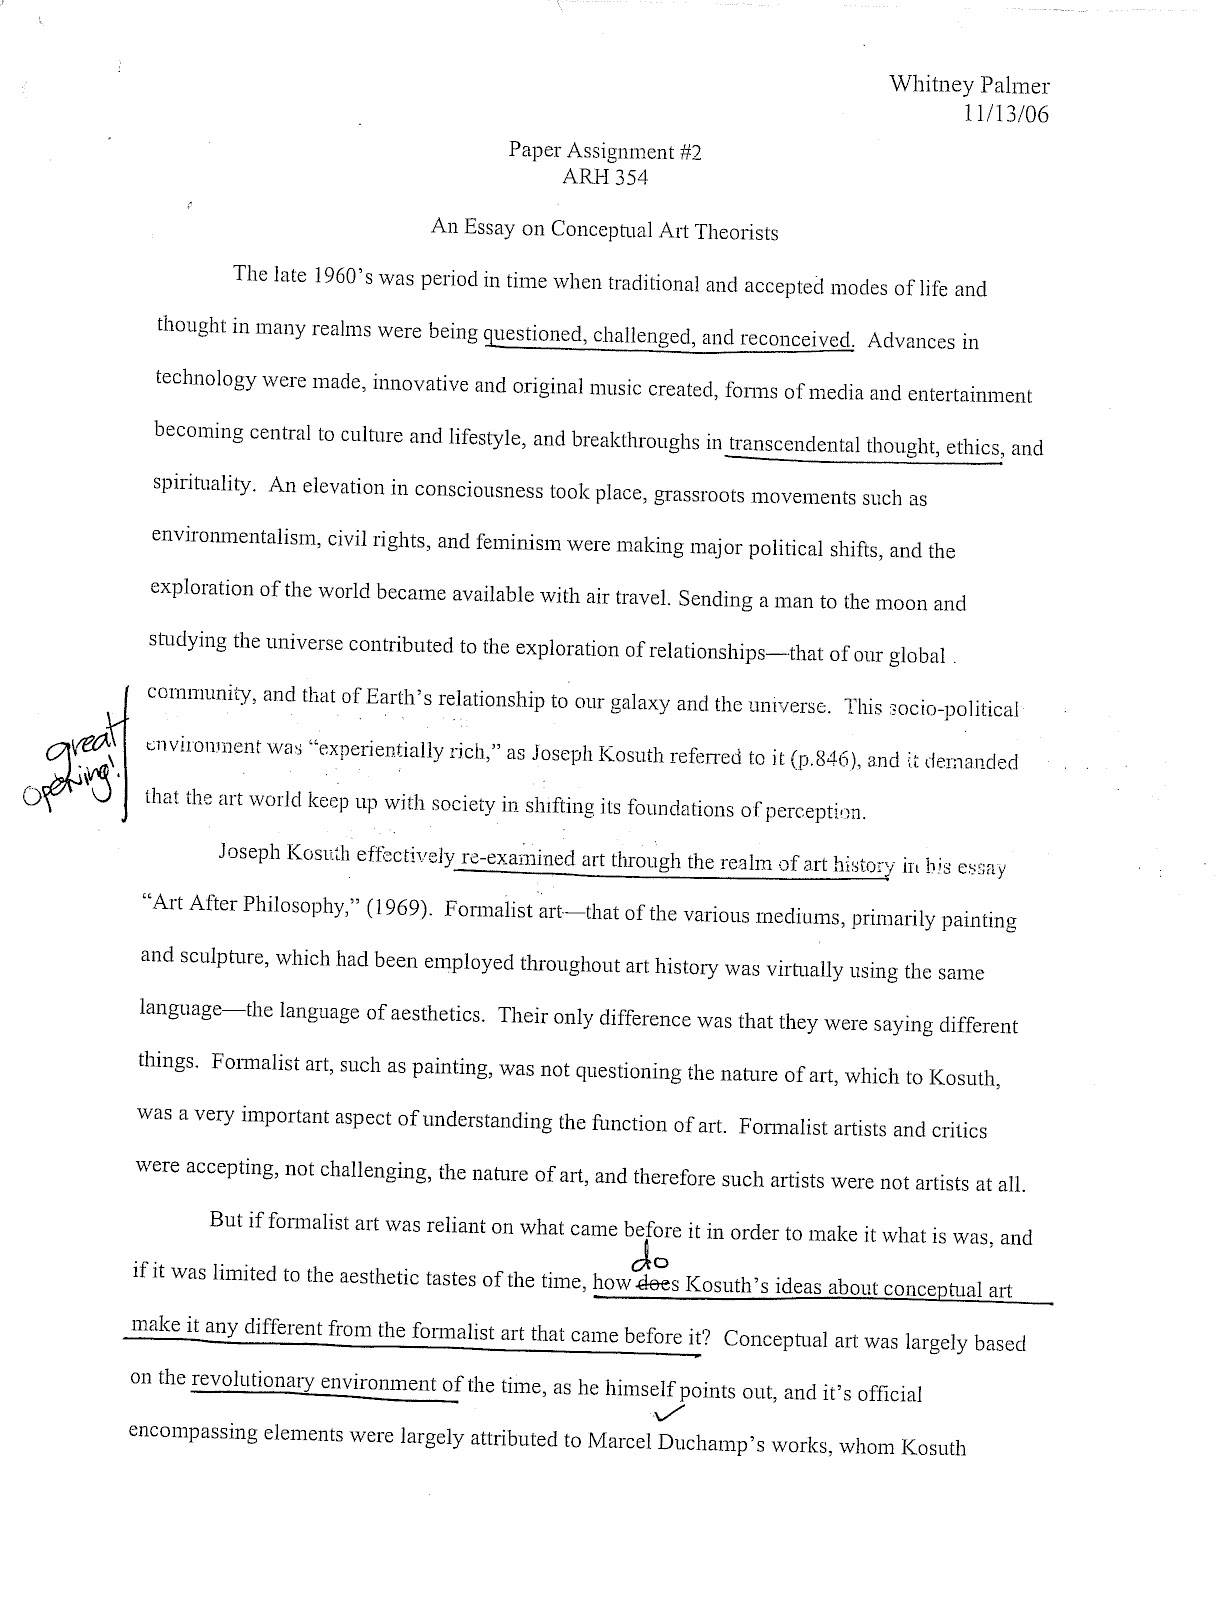 art critique essay art history essay greek art history essay  art history essays art history essays compucenter the aim of this essay from art history fall art criticism essay art criticism student example